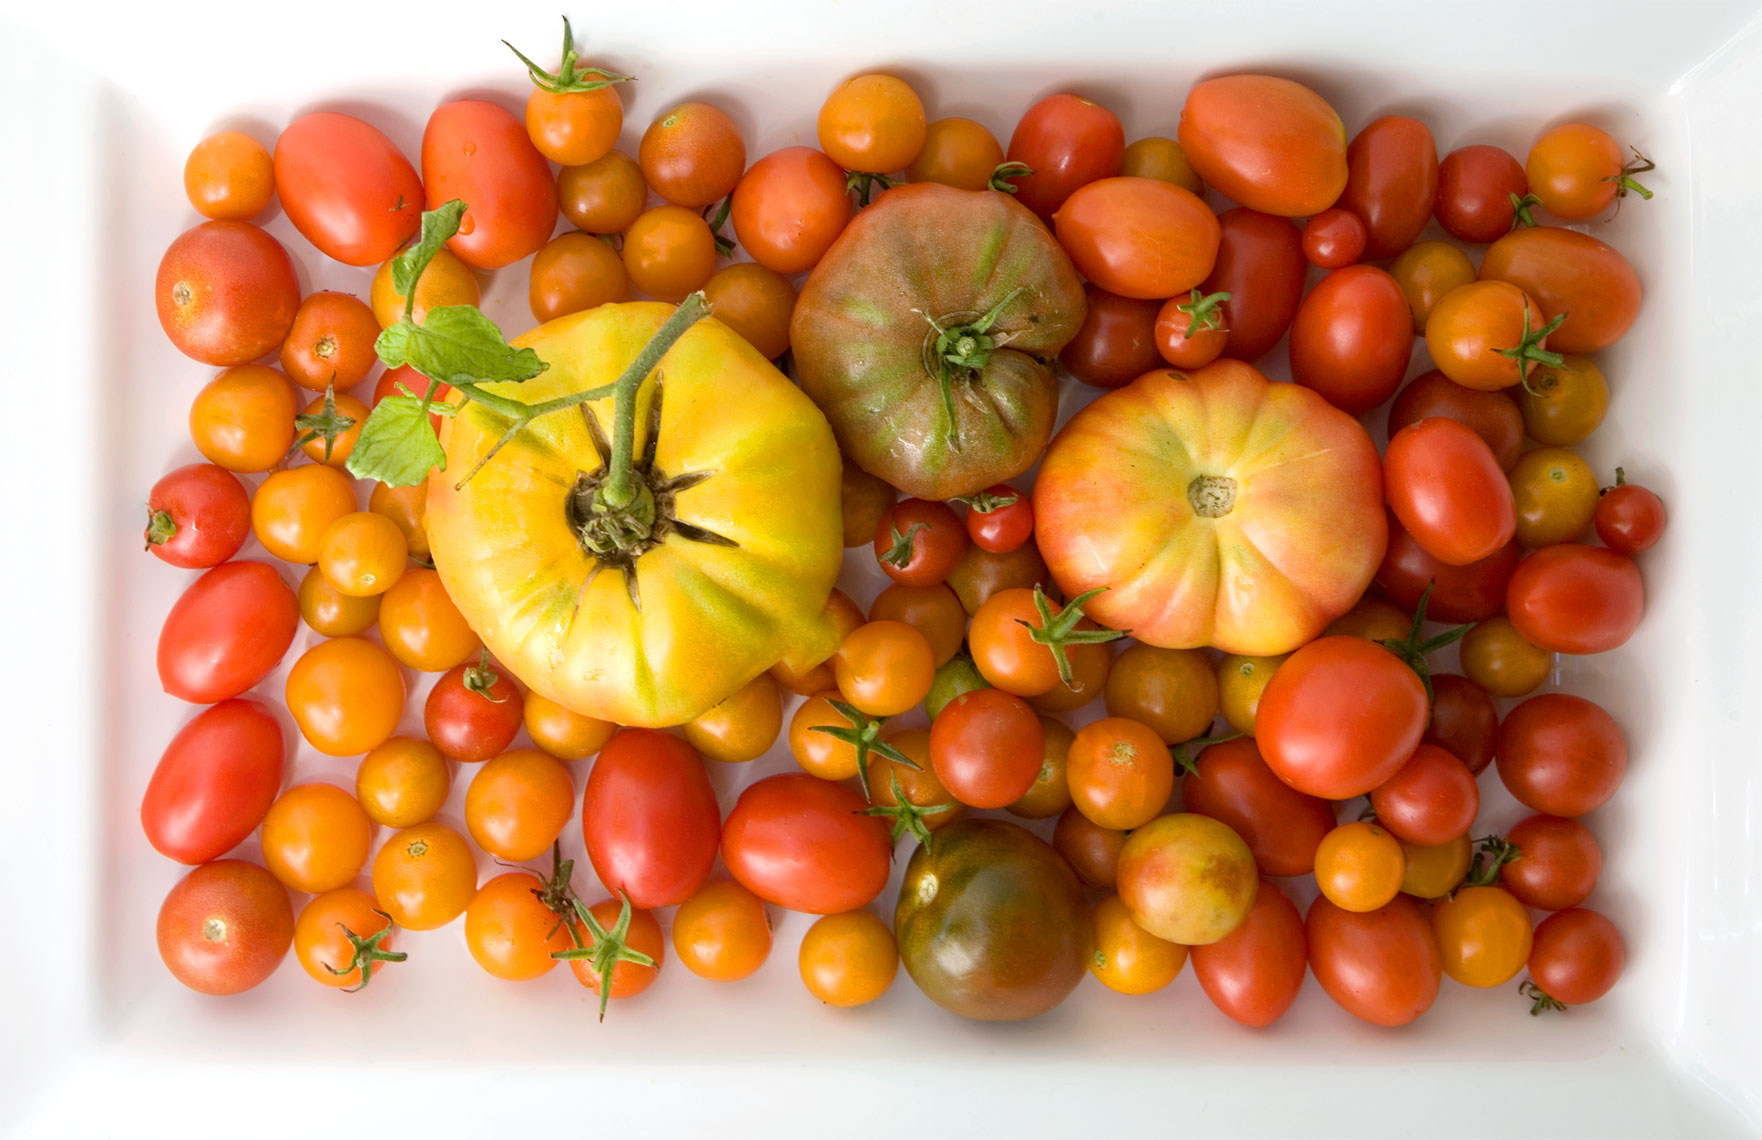 mixedtomatoes4_MG_4433_portfolio